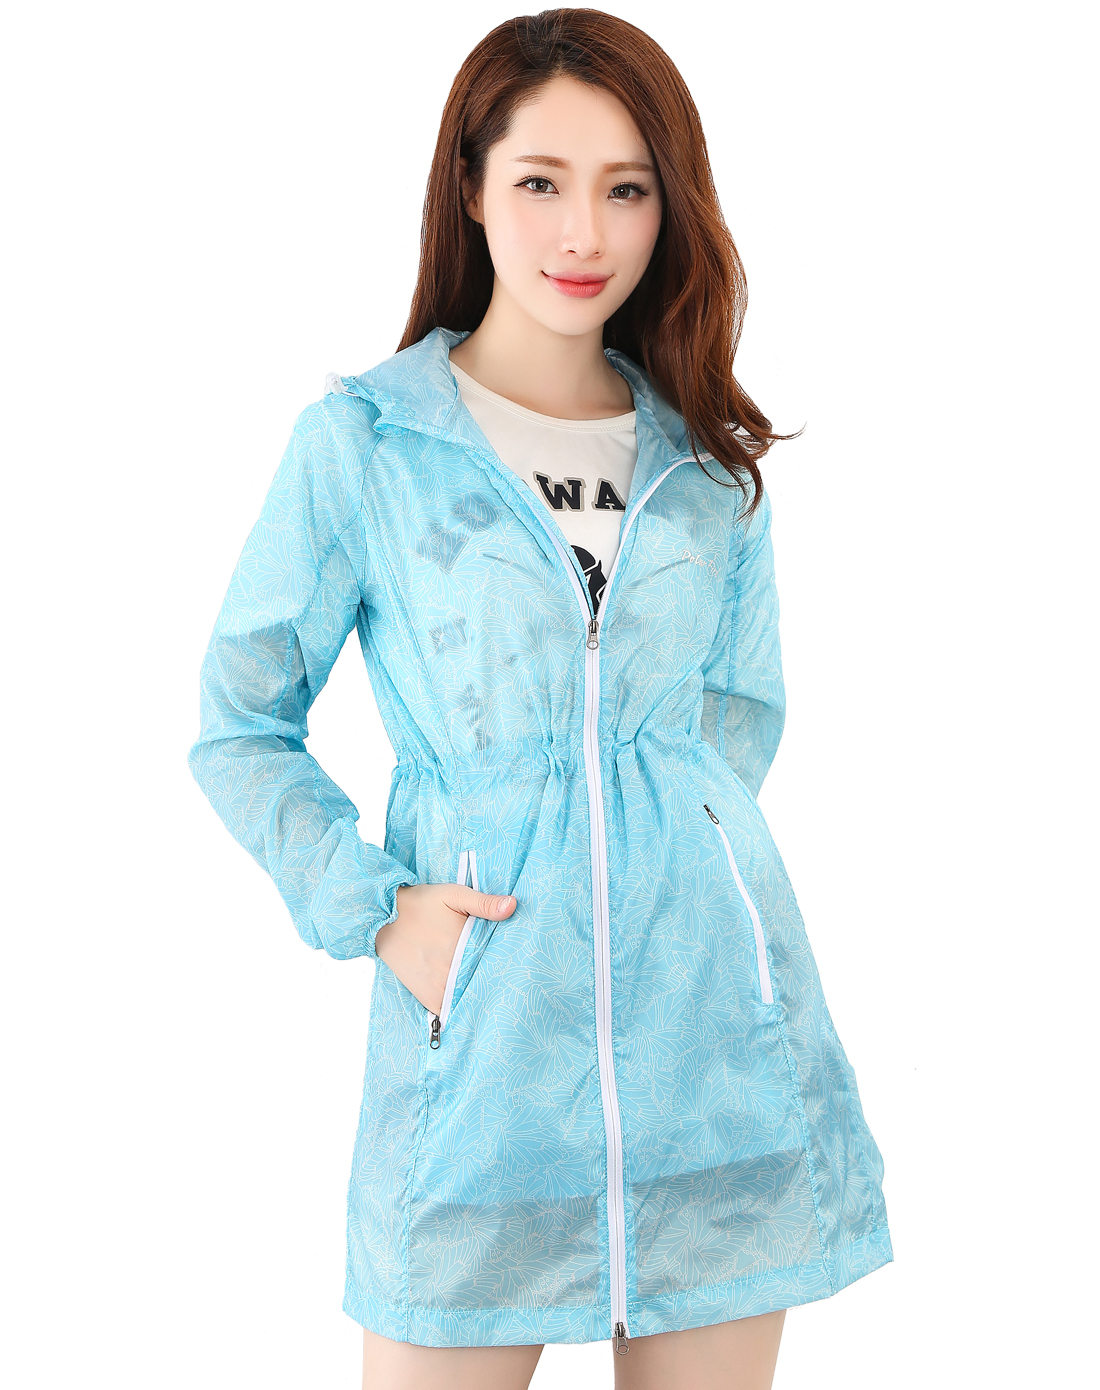 Polar Fire Skin Coat Women's Long Sports Coat Outdoor Lightweight Air-breathable Sunscreen Printed Sunscreen in Summer